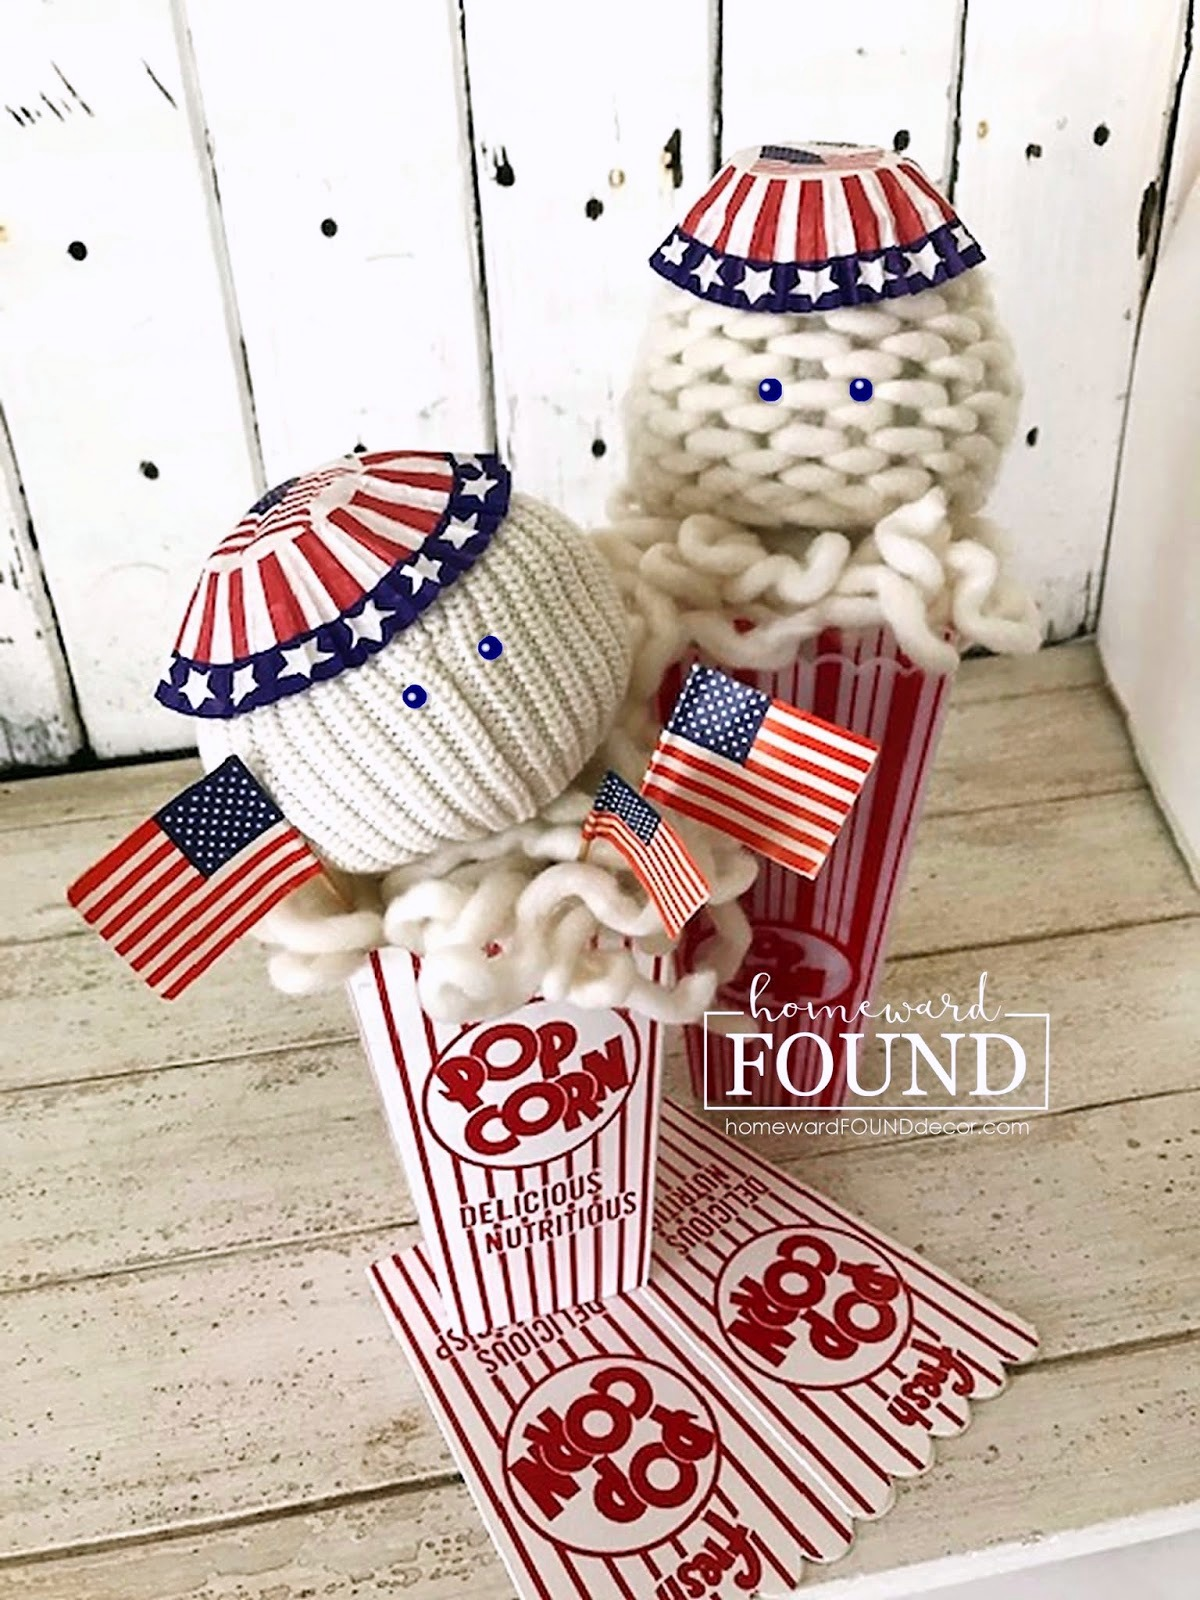 Patriotic Sweater Popcorn by Homeward Found, featured on DIY Salvaged Junk Projects 534 on Funky Junk!